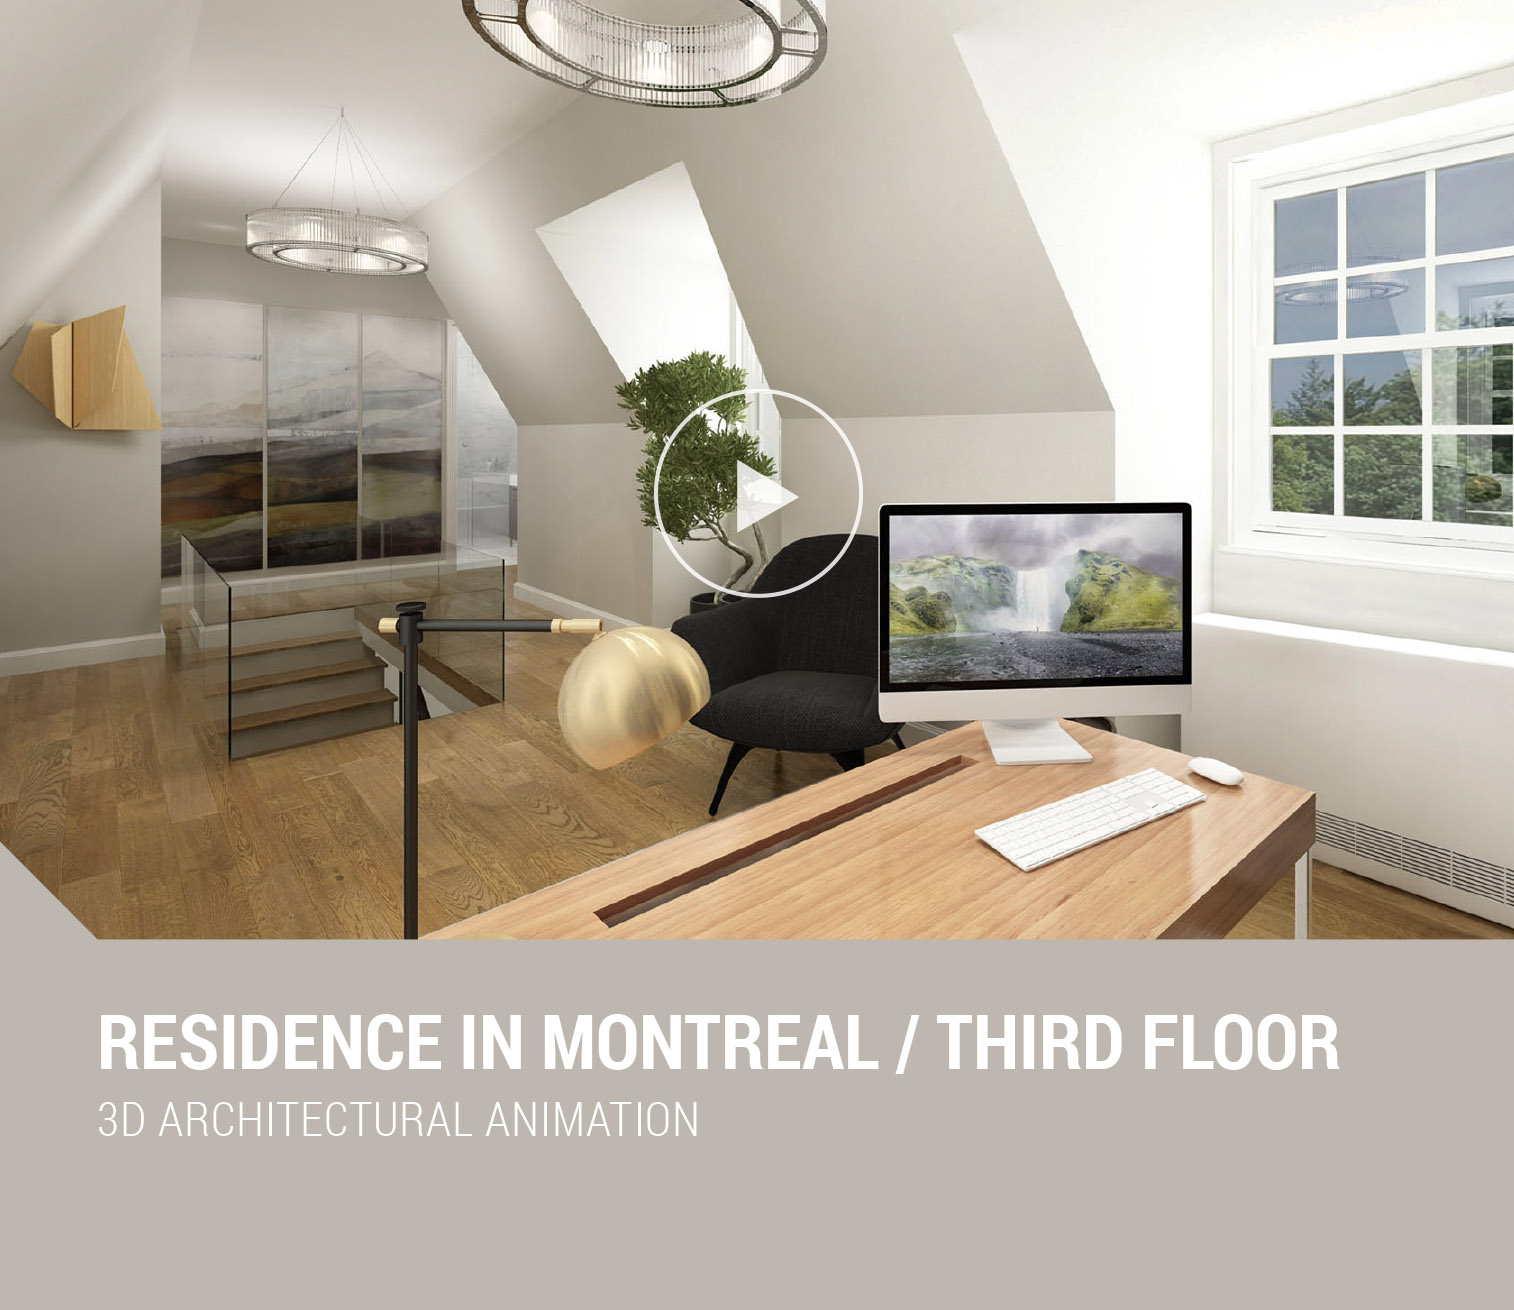 Schema Dimitra Chrona designer, creative director, architectural, 3D visualization, 3D Rendering, branding websites, digital, graphic design, interior design, real estate, luxury property, staging, museum, virtual, art, brochures, exhibitions, logotype, logo, Canada Quebec Montreal Athens Greece schema design residence montreal third floor video small.jpg